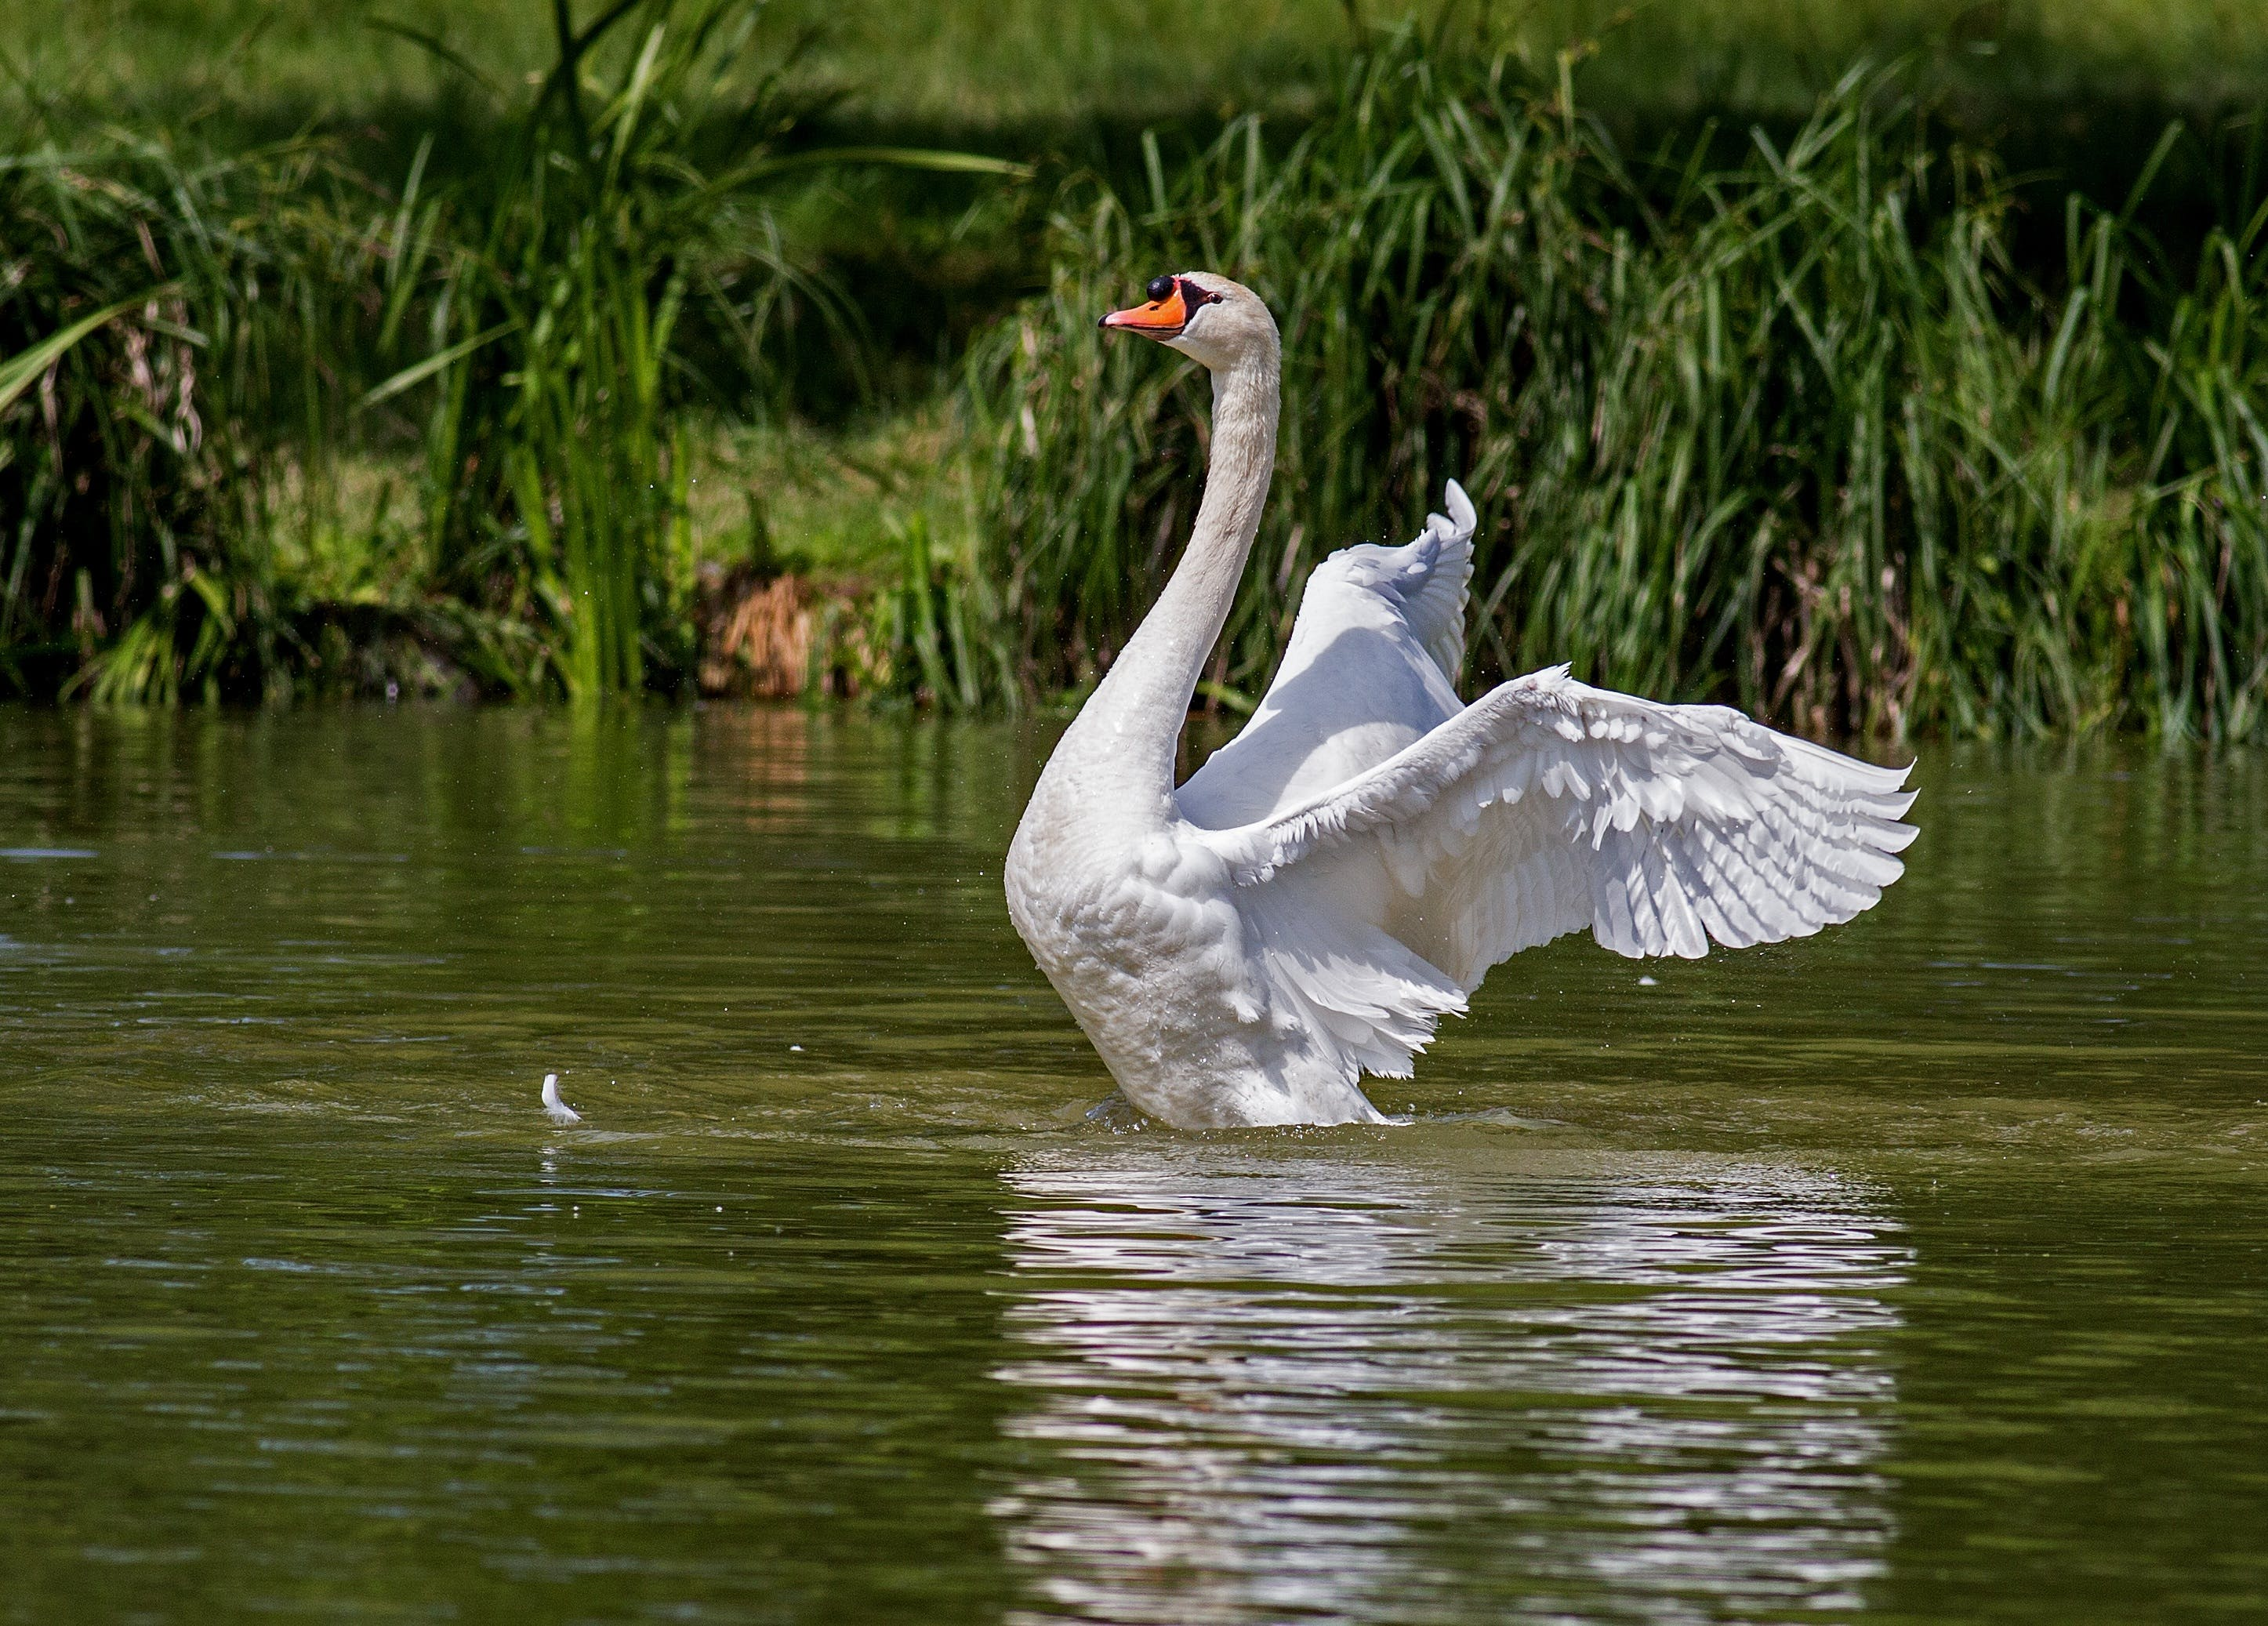 White Swan on Green Body of Water